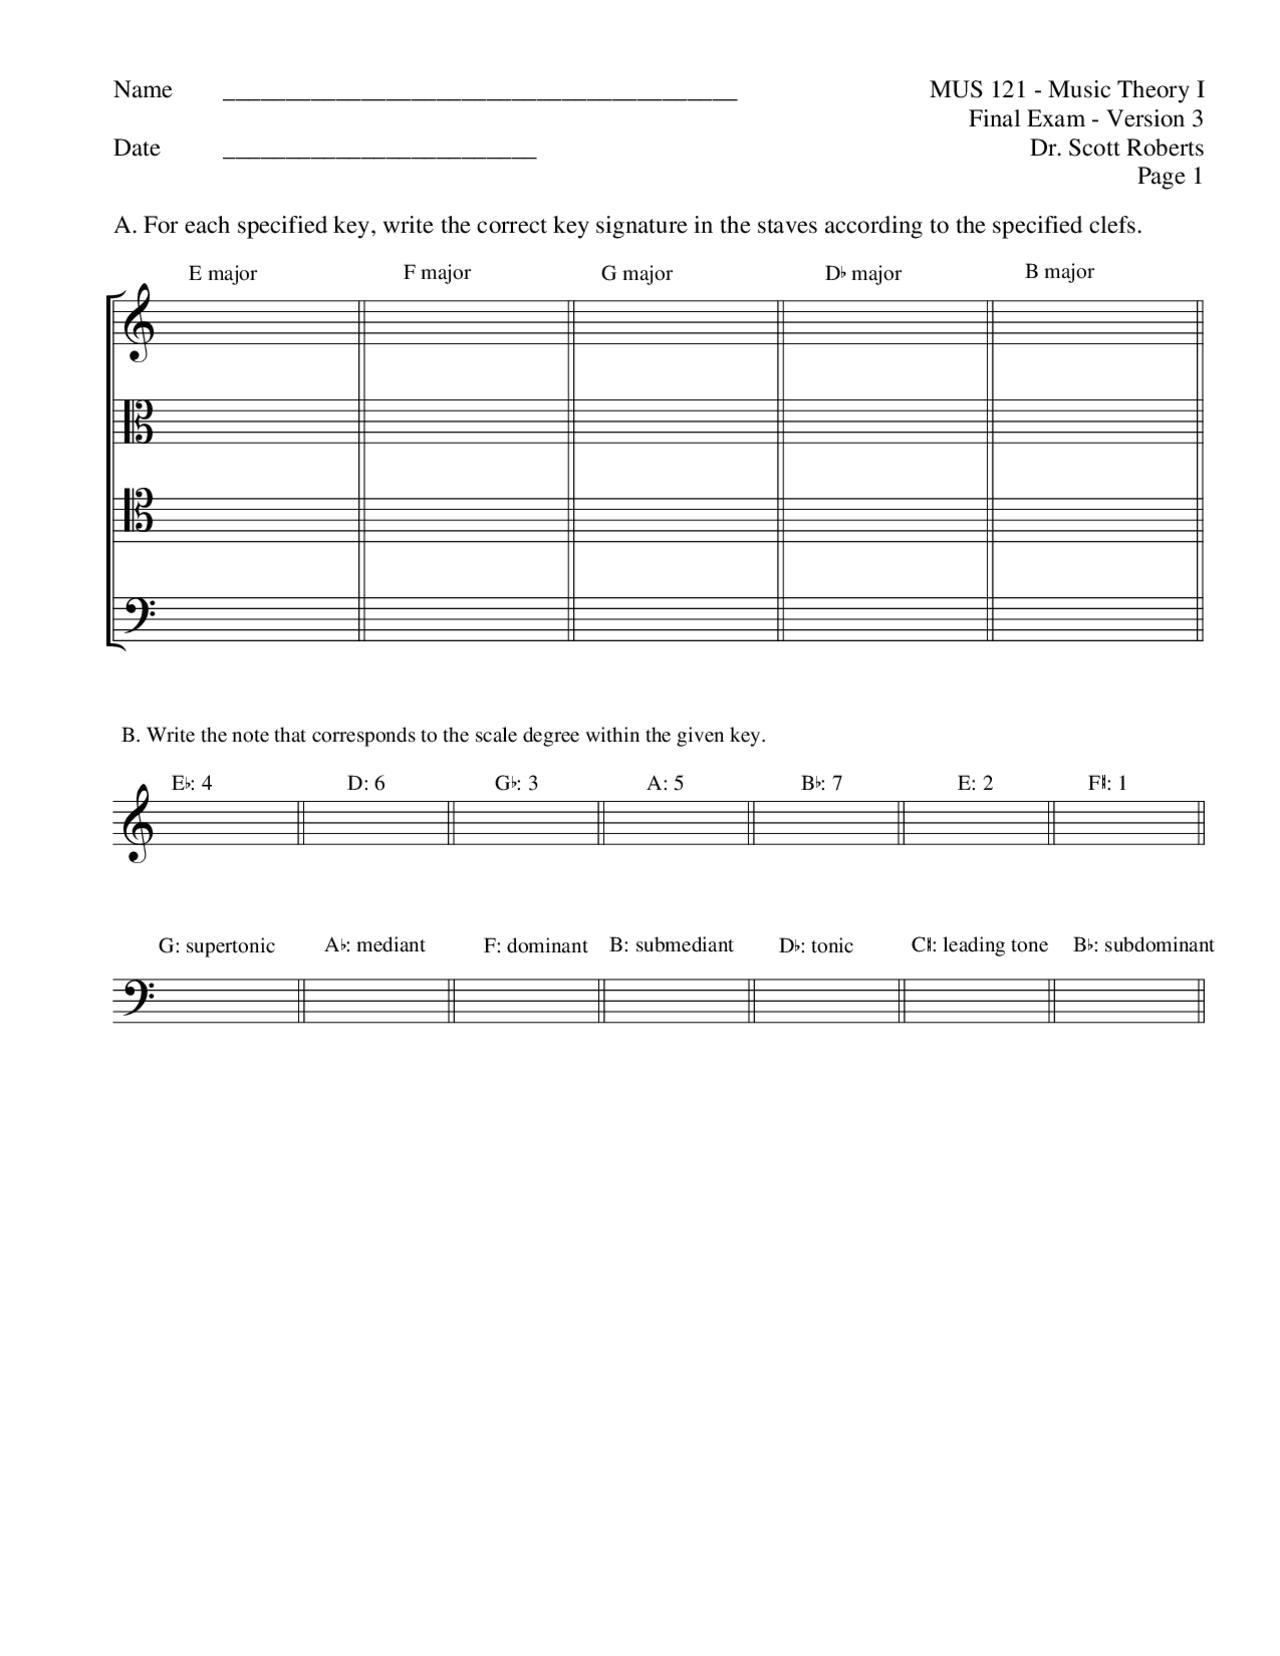 Music Theory I Dr. Roberts UTM Roberts Final Exam   Docsity